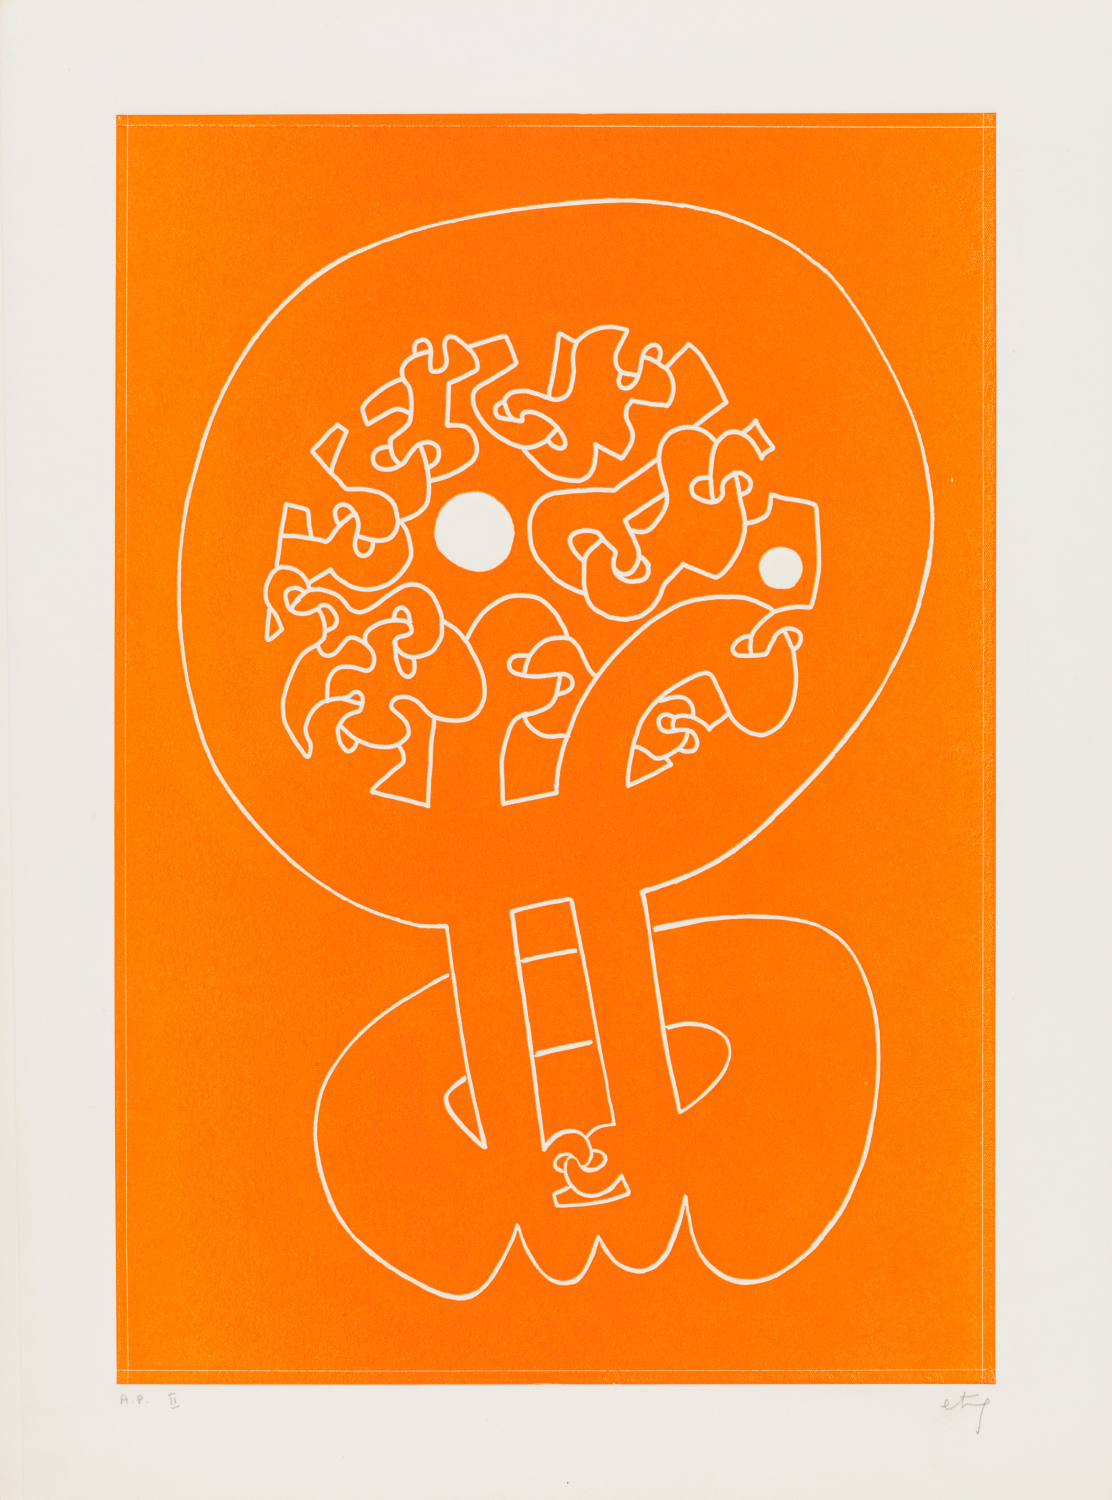 Sorel Etrog, Untitled Orange, 1965, intaglio on paper, A.P. II. Collection of the MacLaren Art Centre. Gift of the artist, 1999. Photo: Andre Beneteau